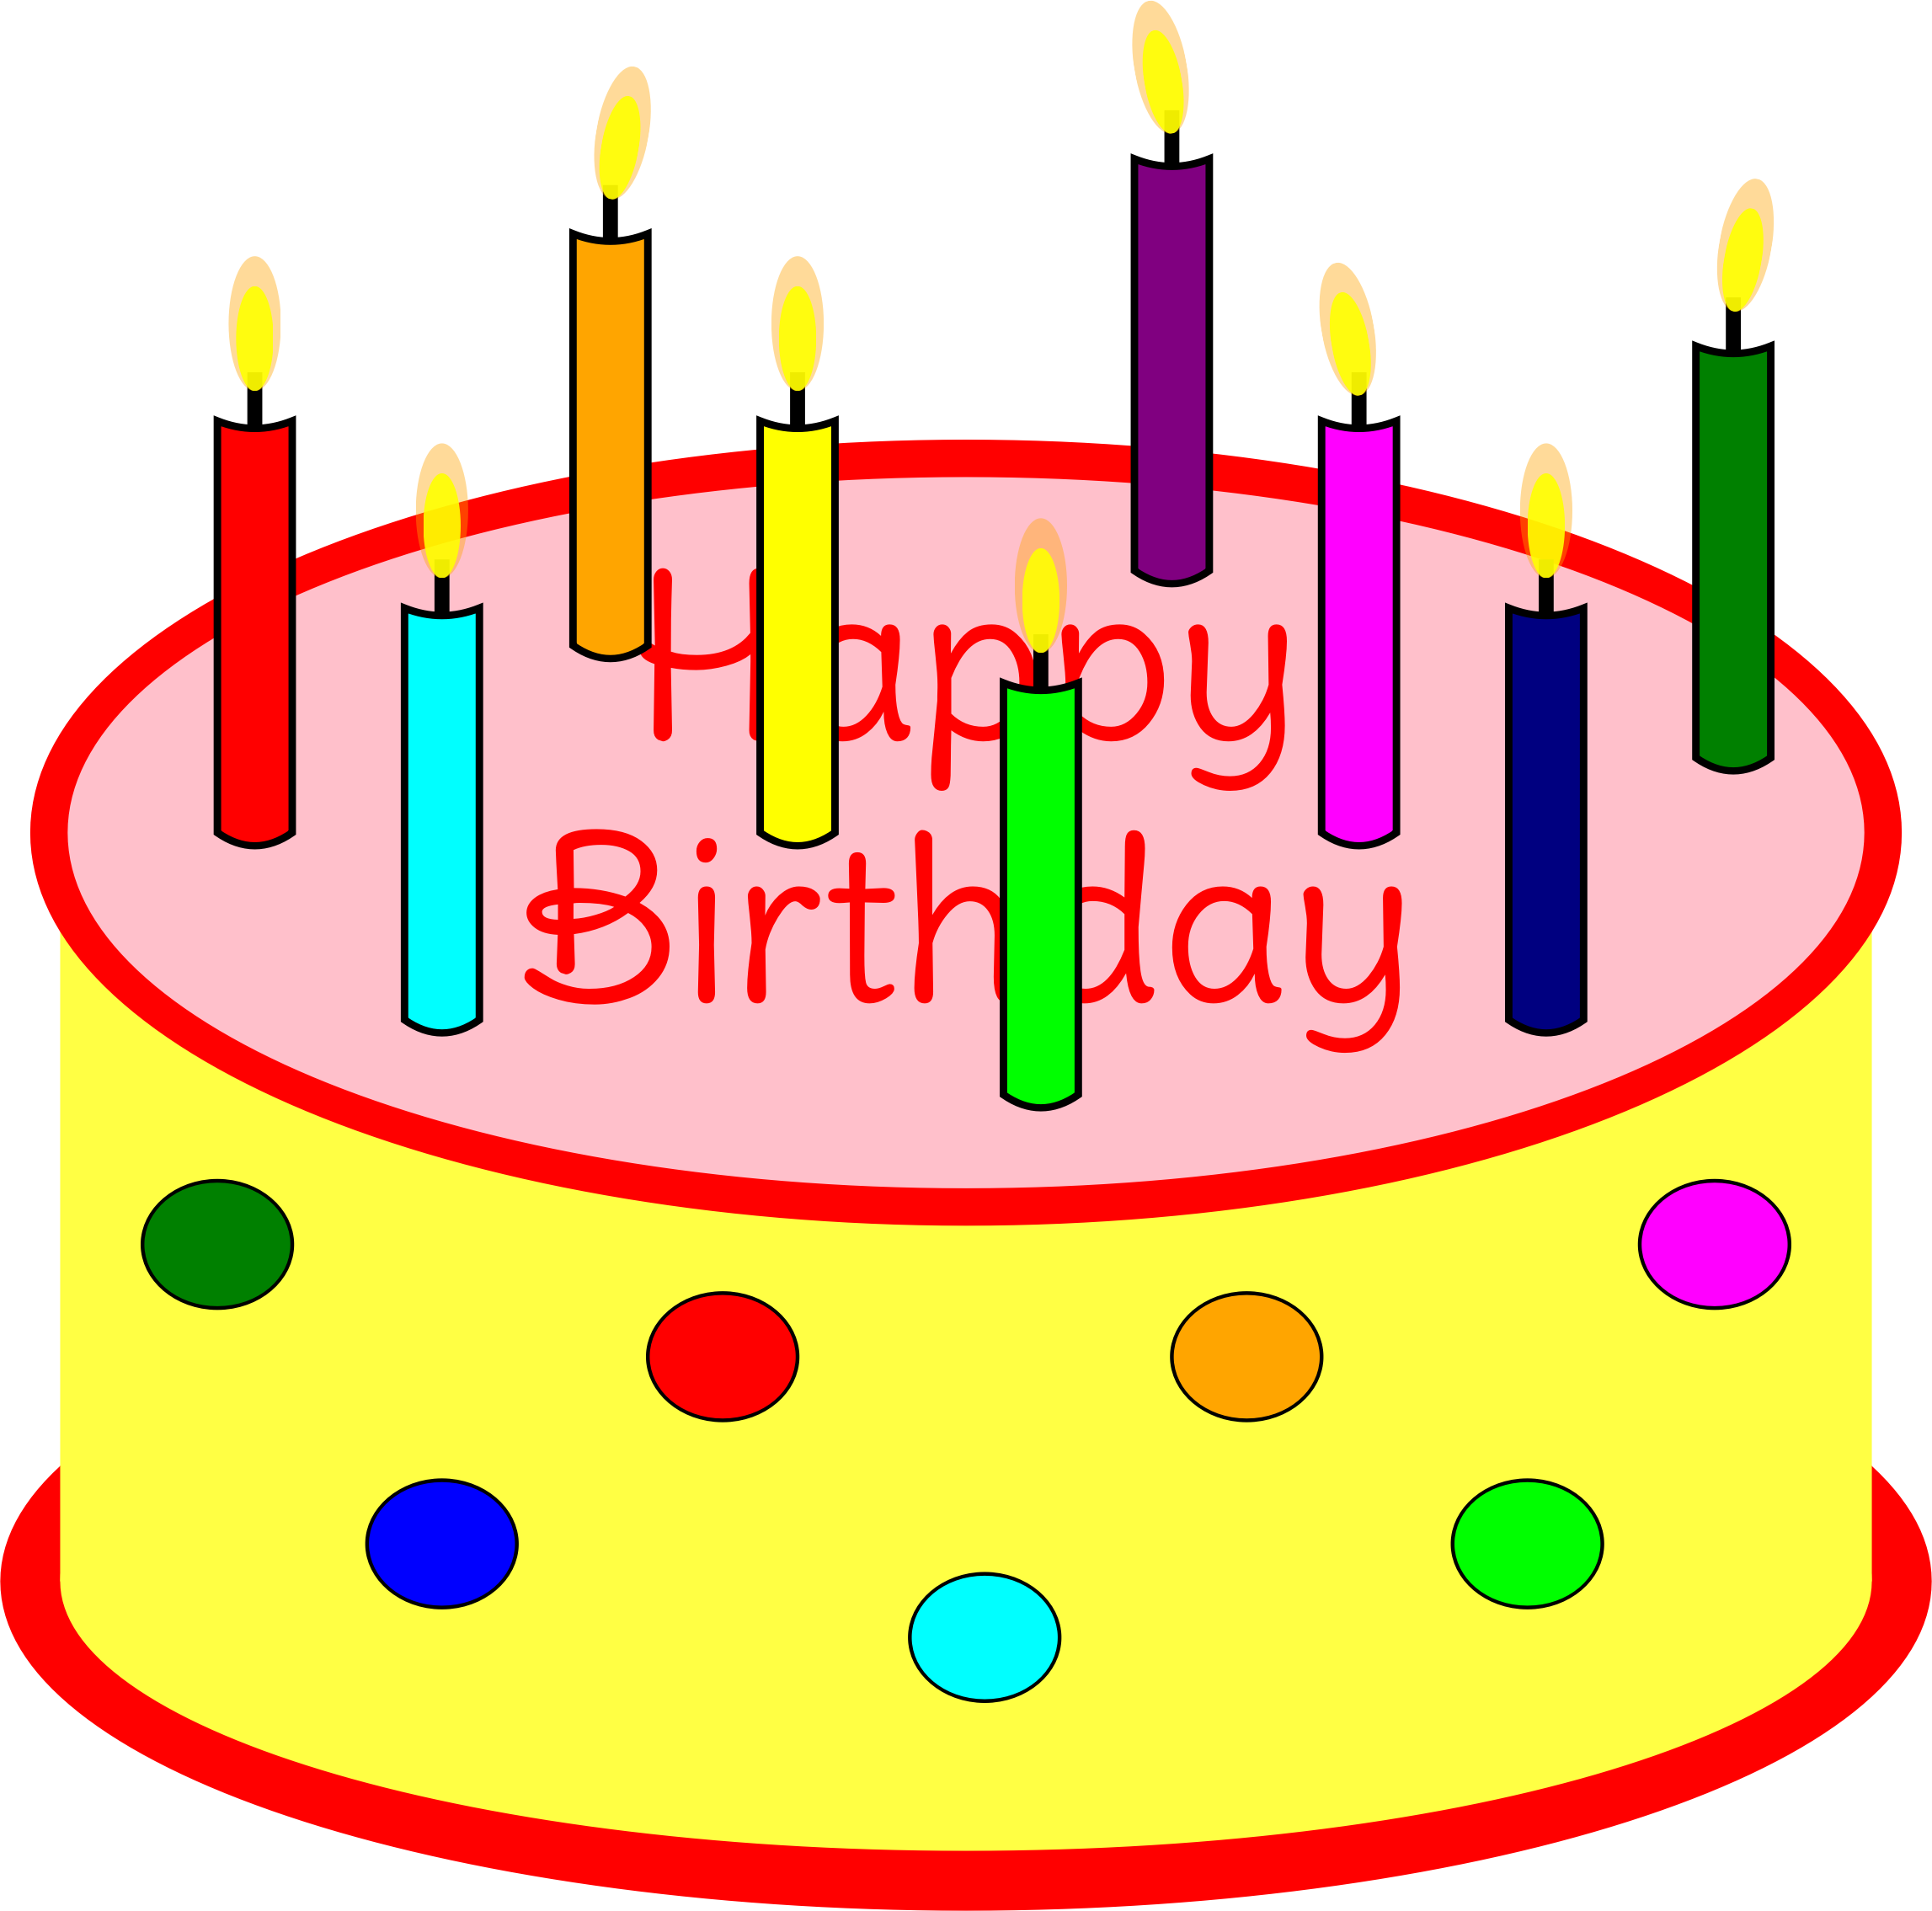 Birthday cake clipart animated png transparent download Clipart - Flickering Candle Birthday Cake png transparent download